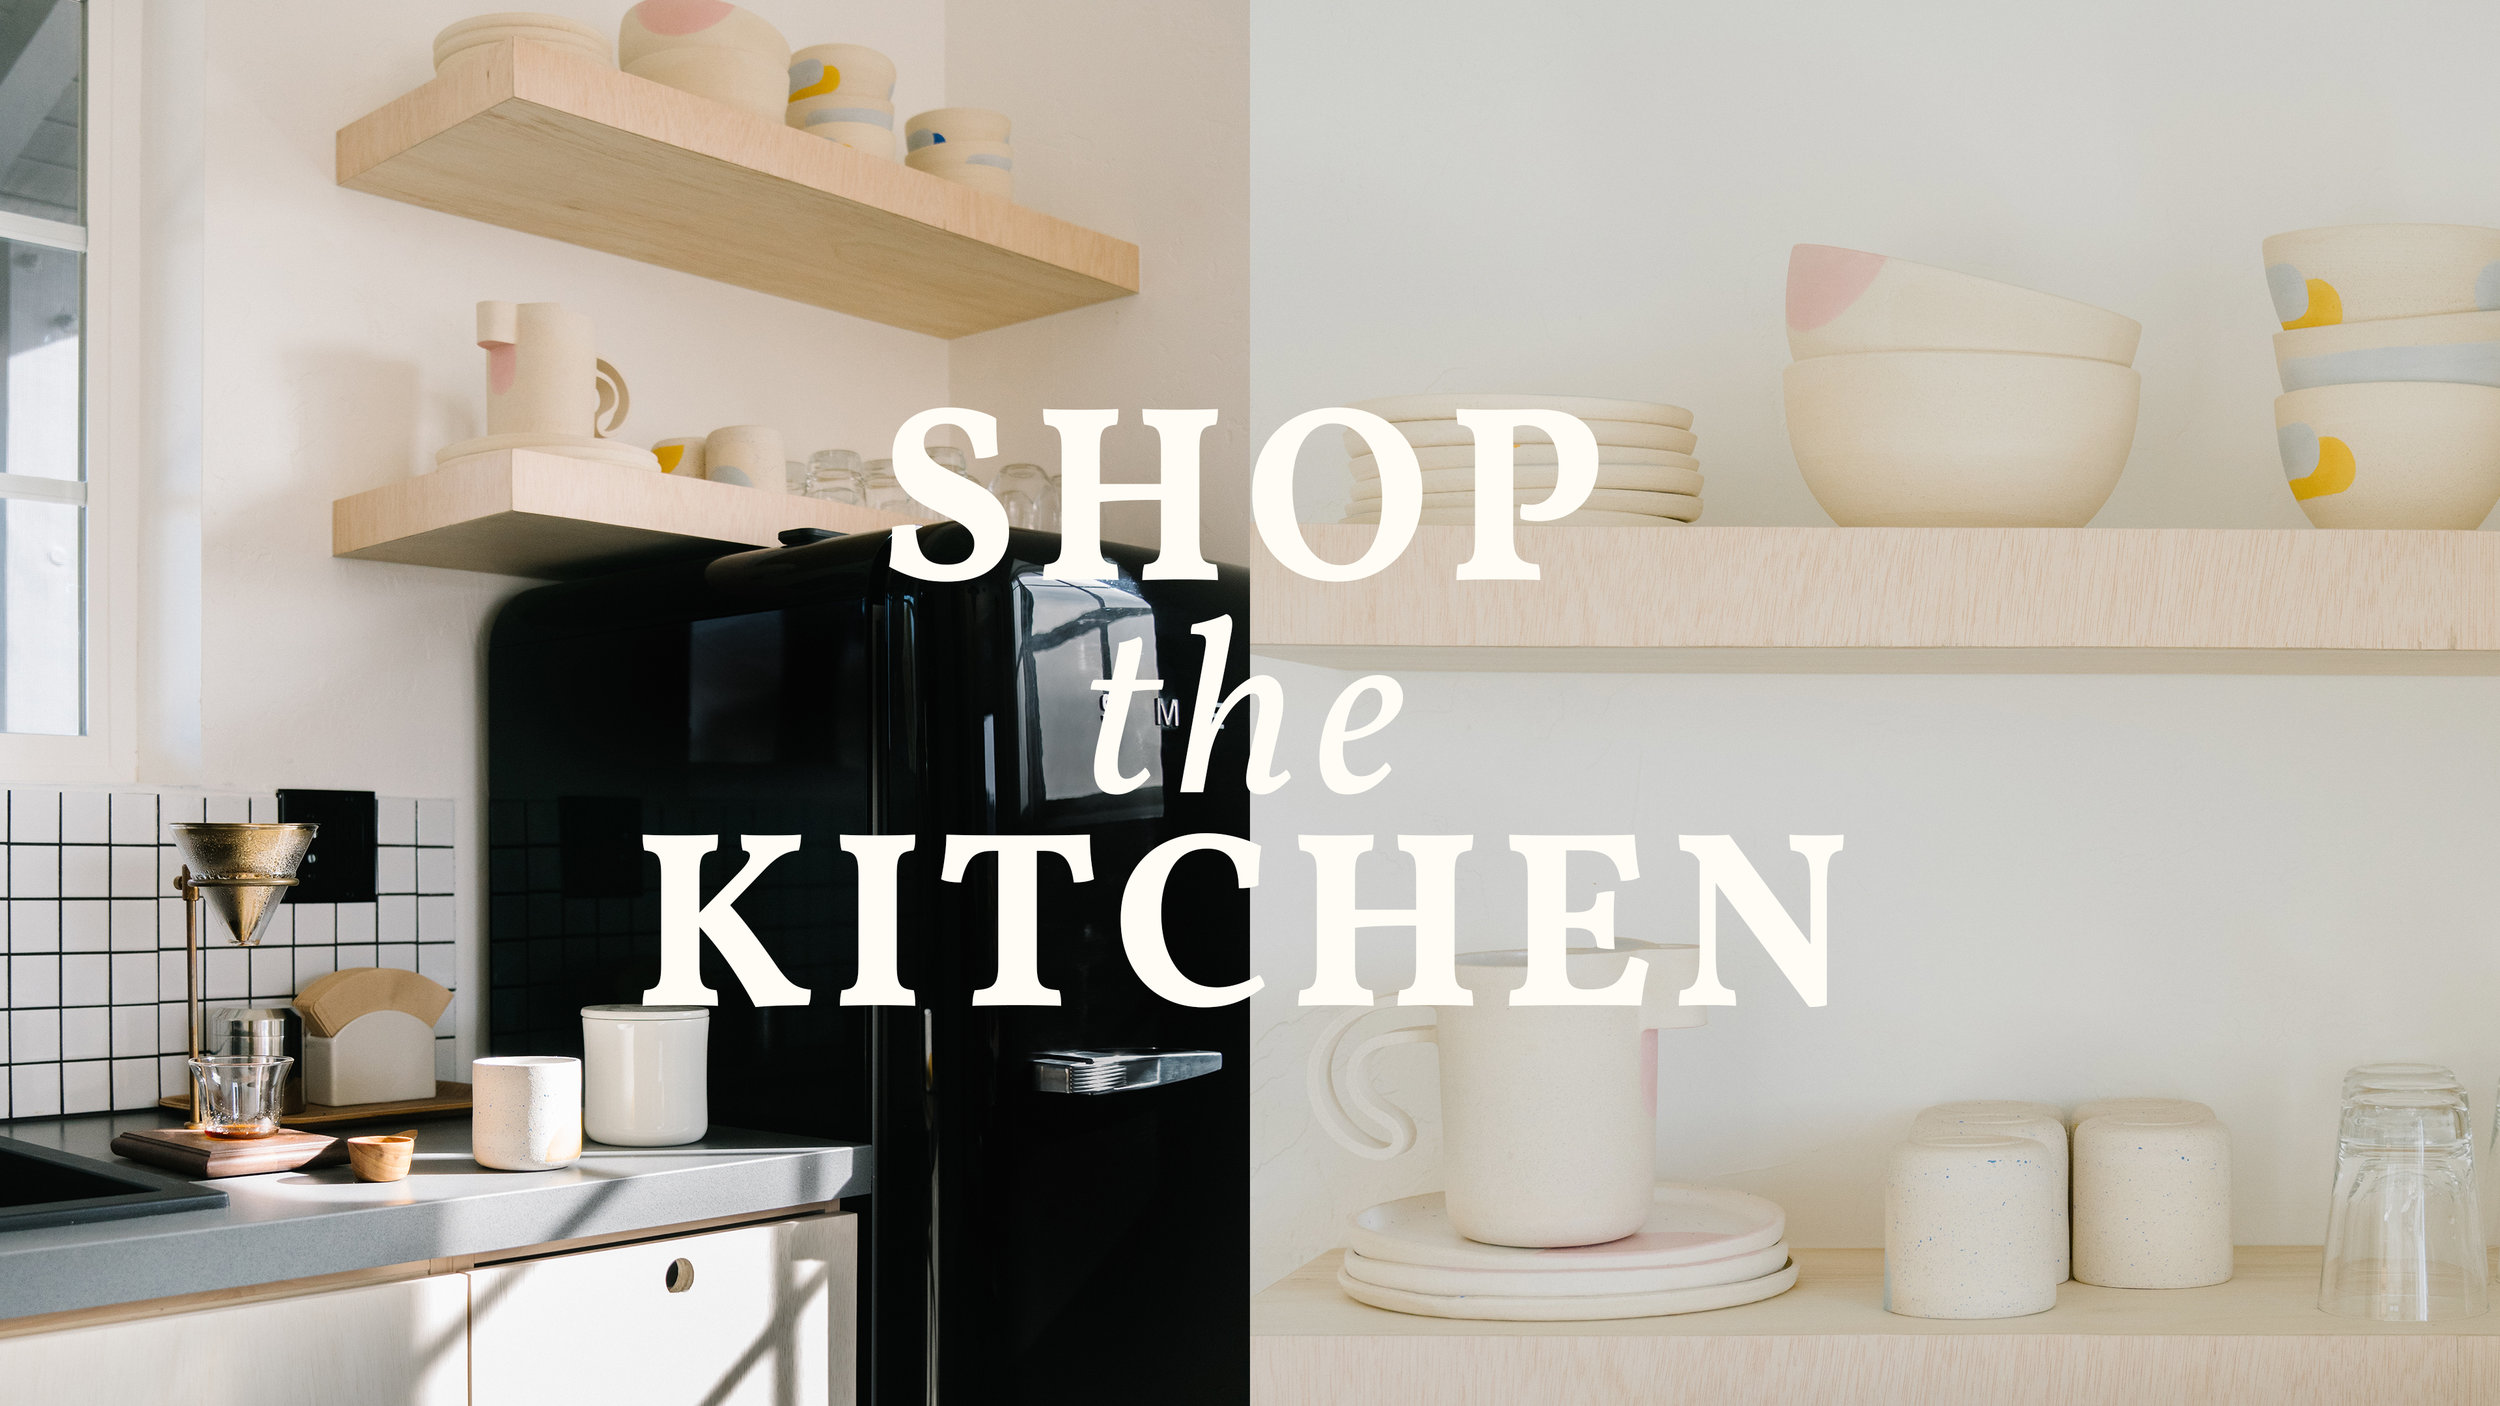 Shop-The-Kitchen.jpg